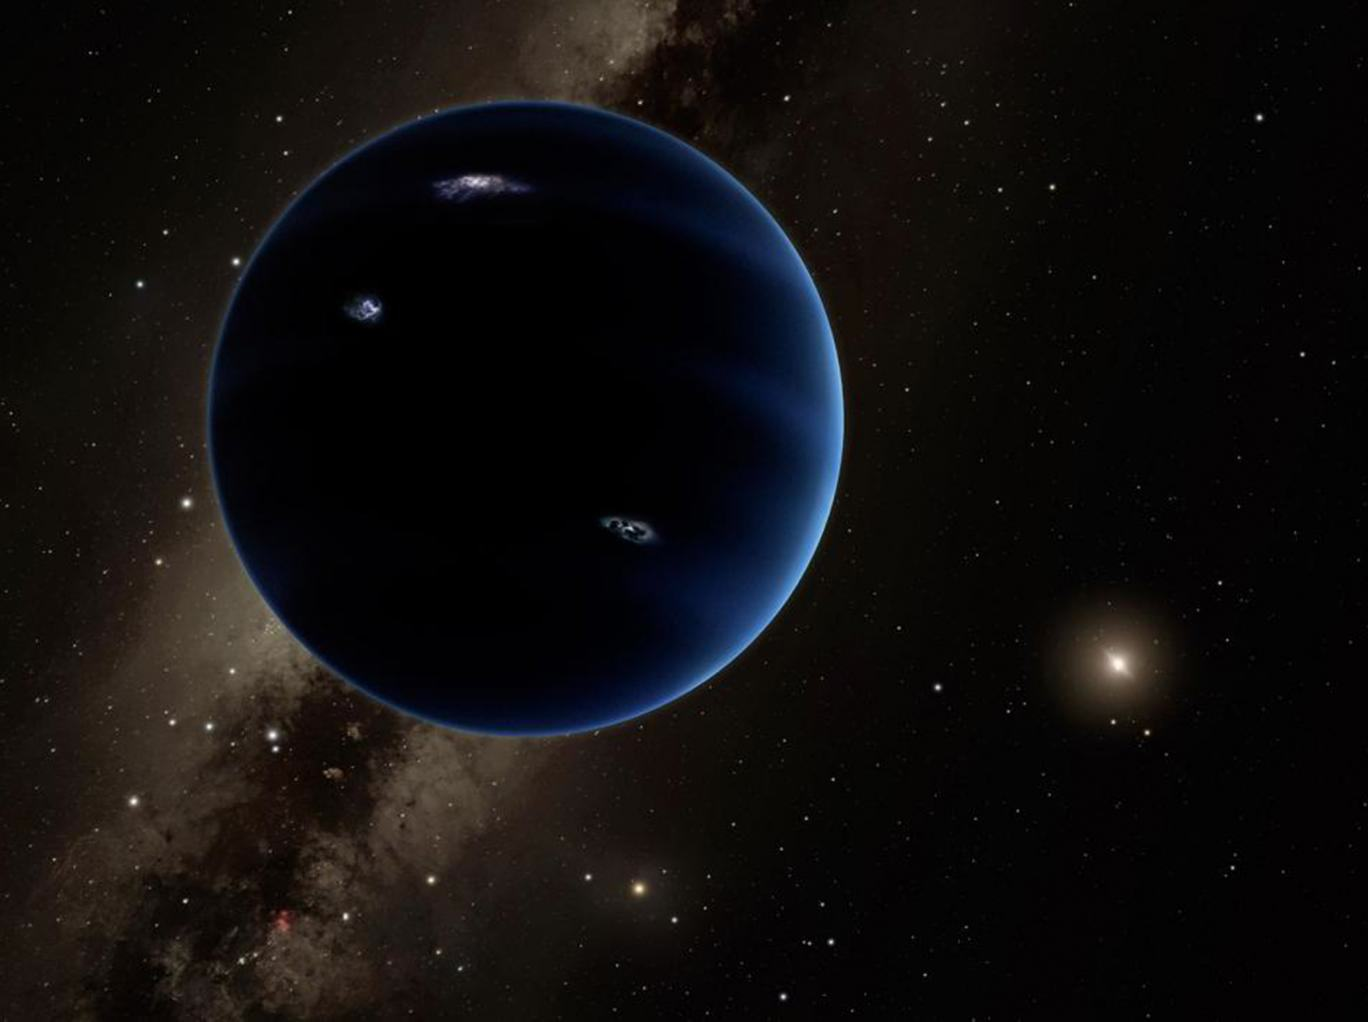 NASA Has Some Bad News For Us About The 'Planet 9' Discovery